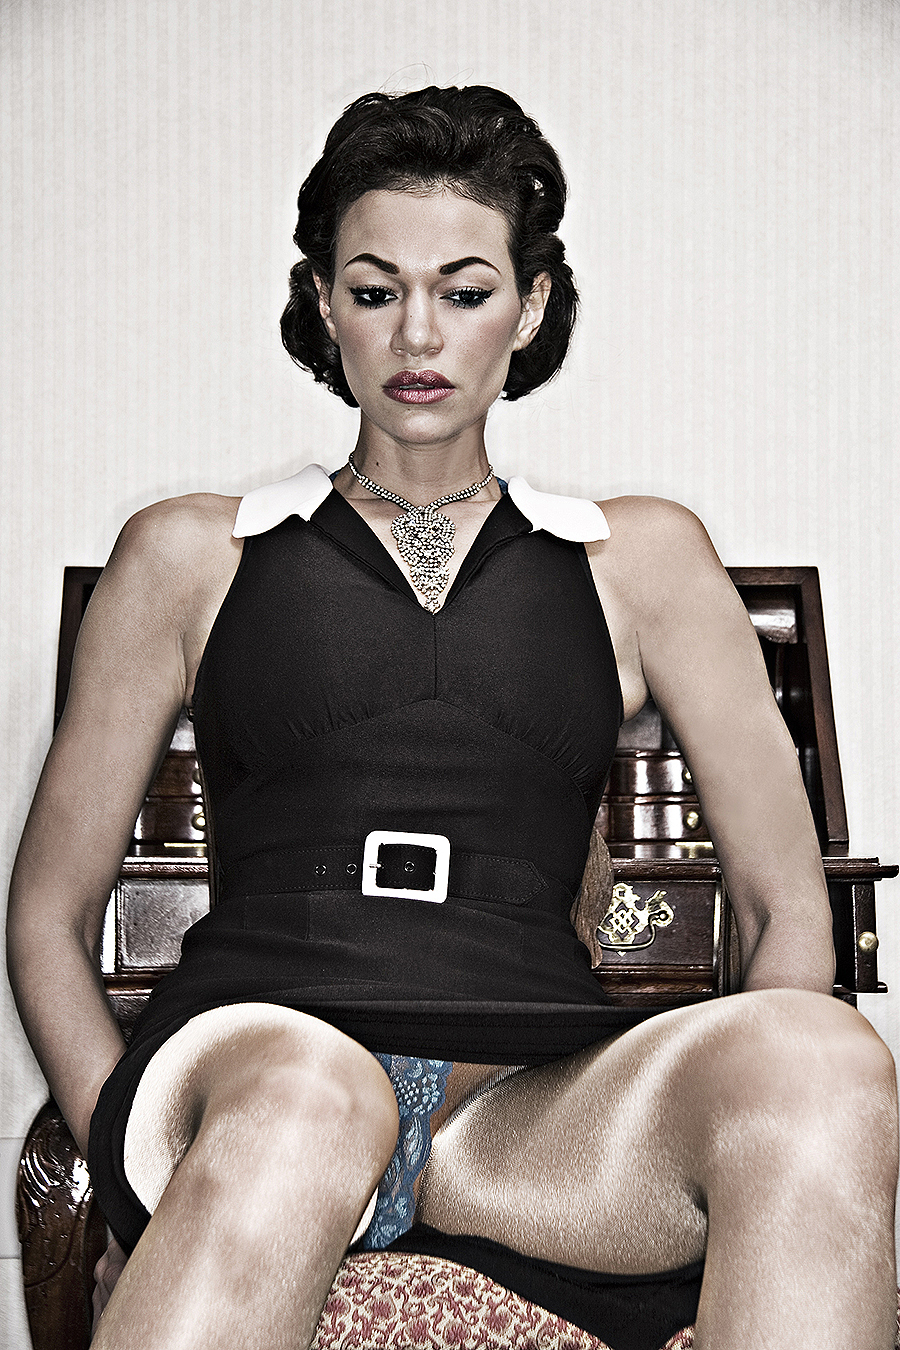 Tony_Ward_fashion_photography_vintage_Chanel_dress_Model_Shannon_Niland_necklace_vintage_jewelry_seated_upskirt